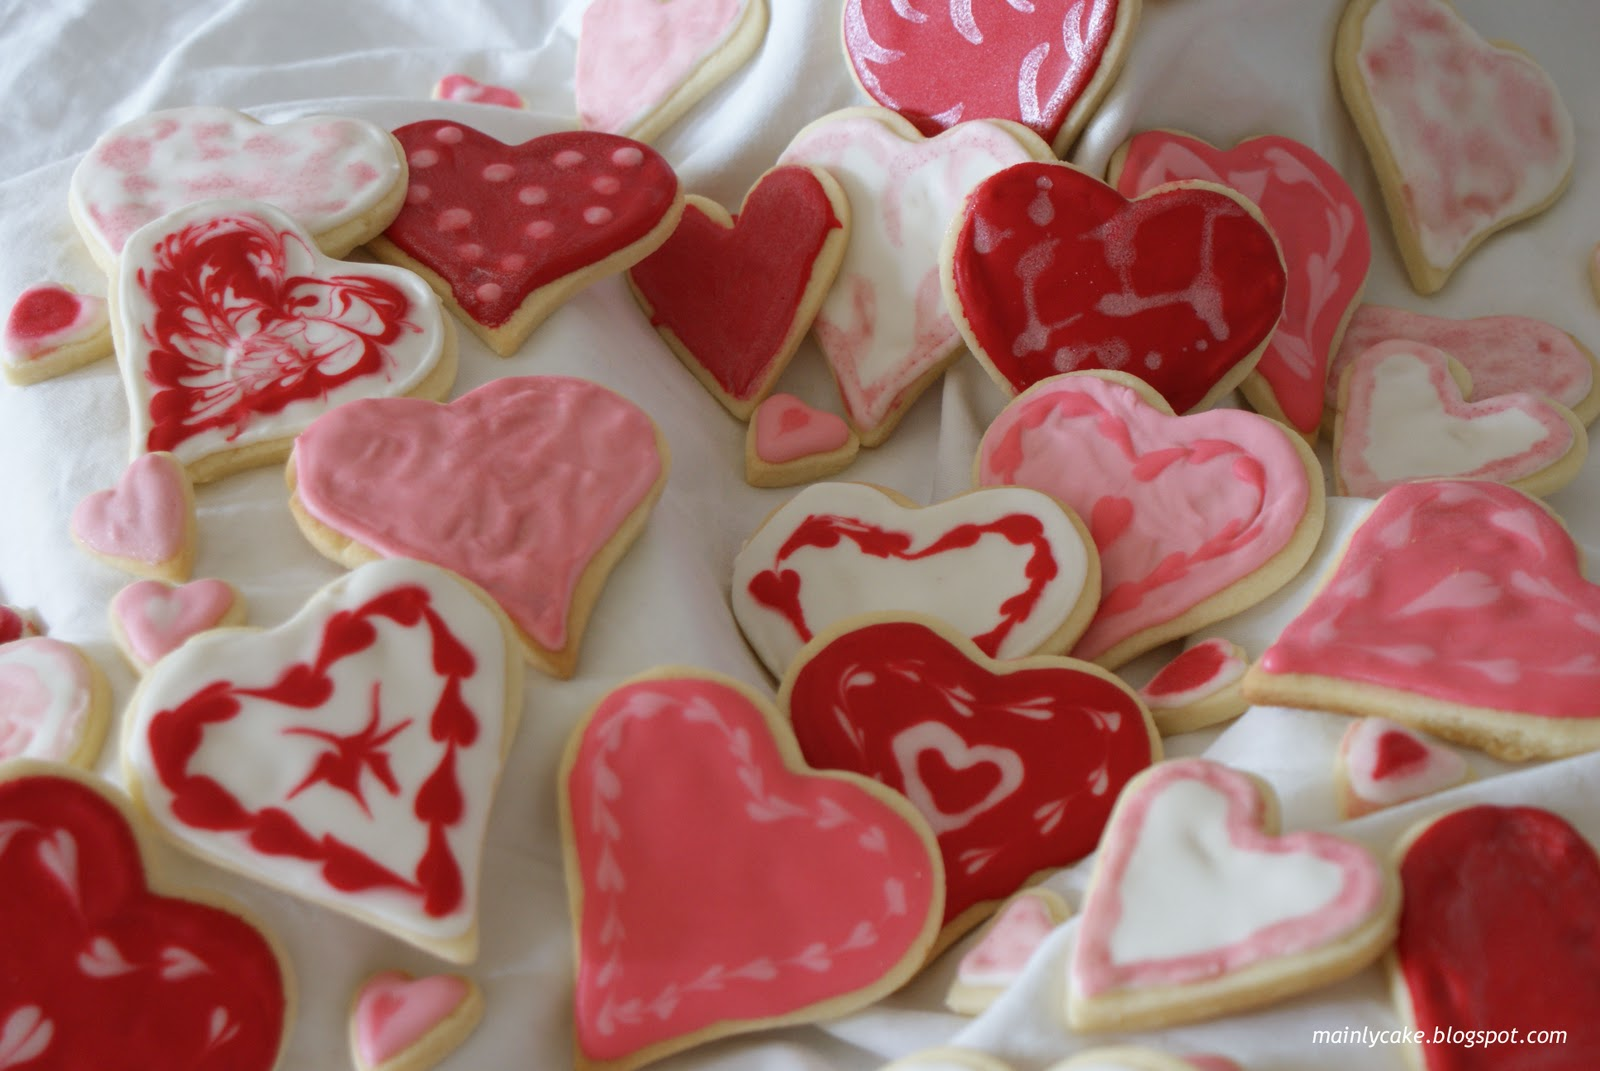 mainly cake decorated sugar cookies